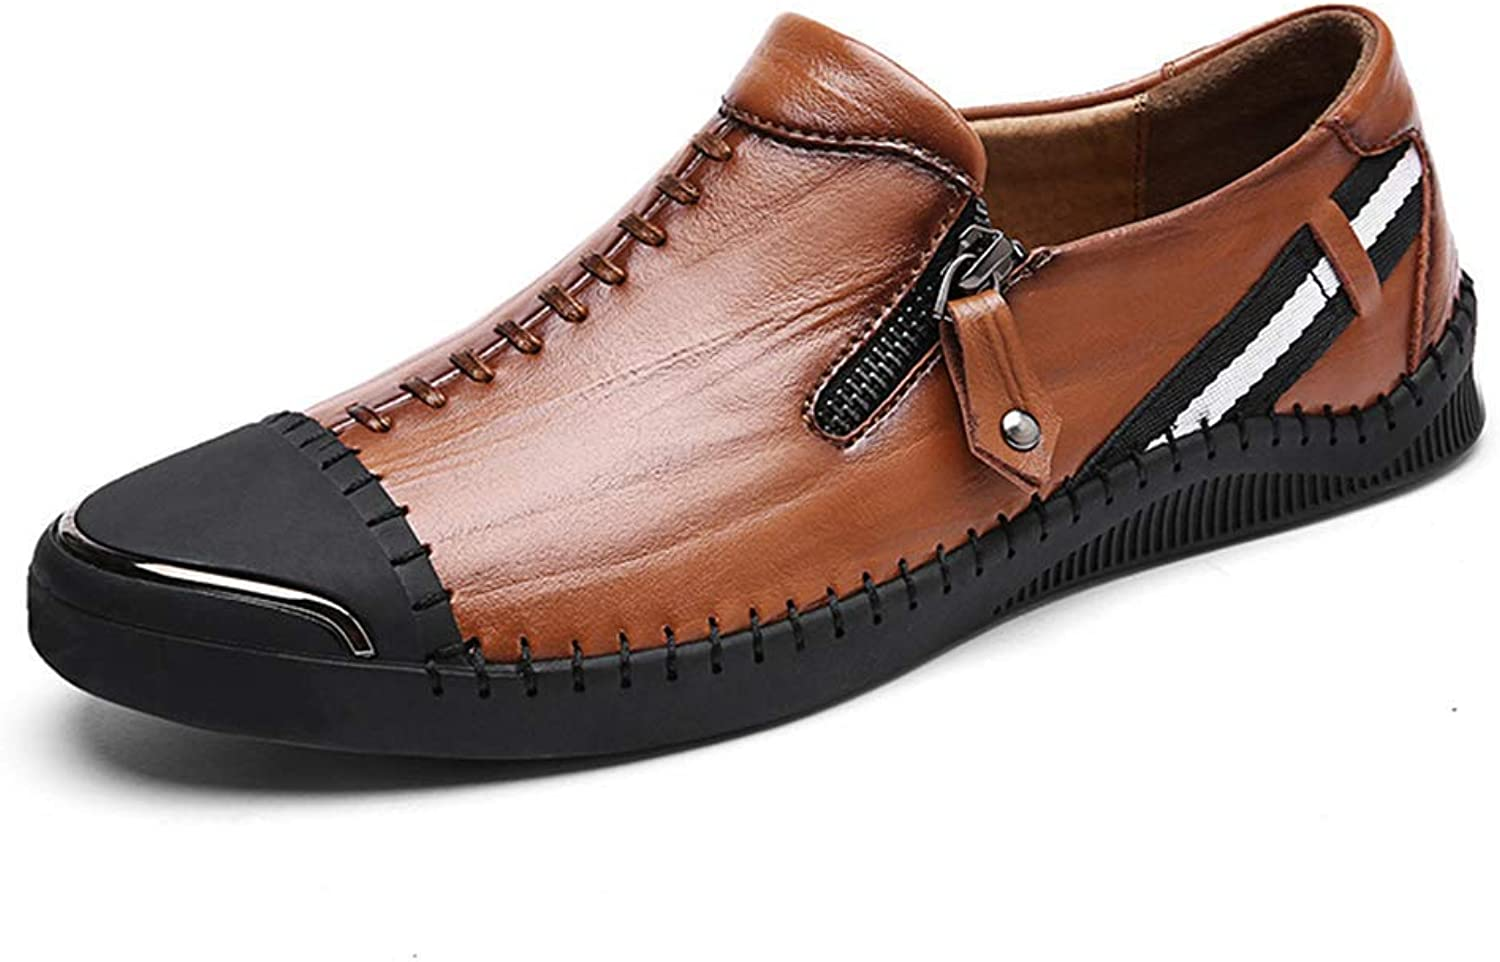 ZHRUI Men Genuine Leather shoes Casual Comfortable Fashion Walking shoes Slip On shoes Travel shoes (color   Brown, Size   7 UK)